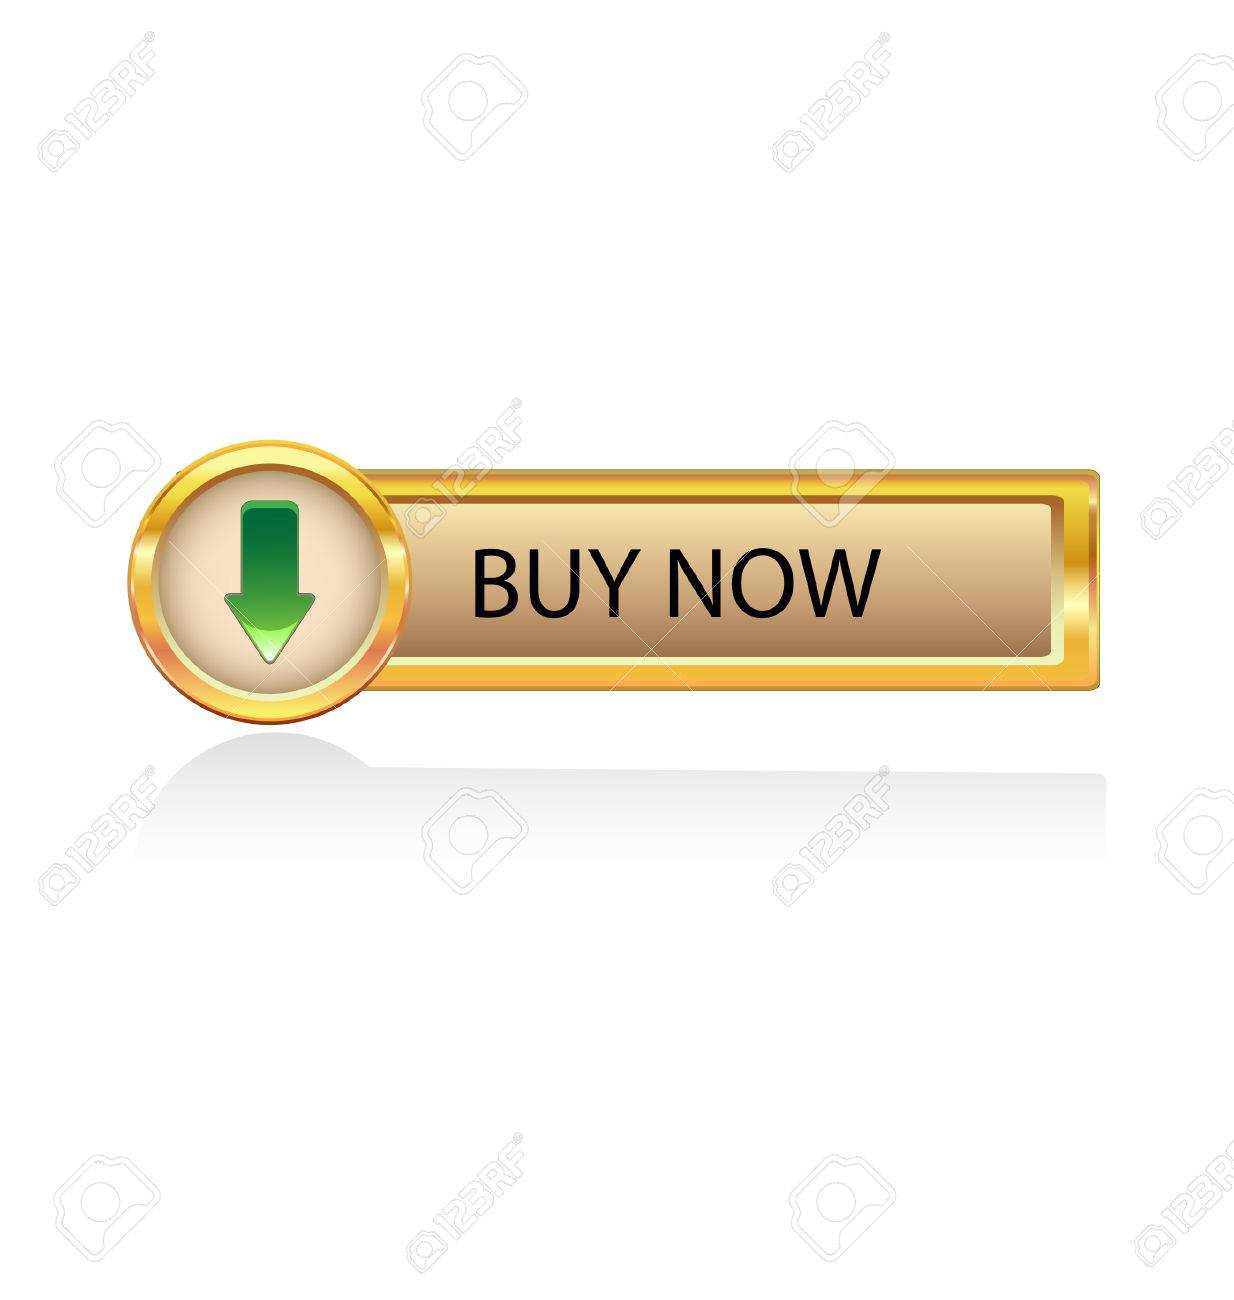 How to buy gold now - Gold Button Withbuy Now Icon Stock Vector 6486335